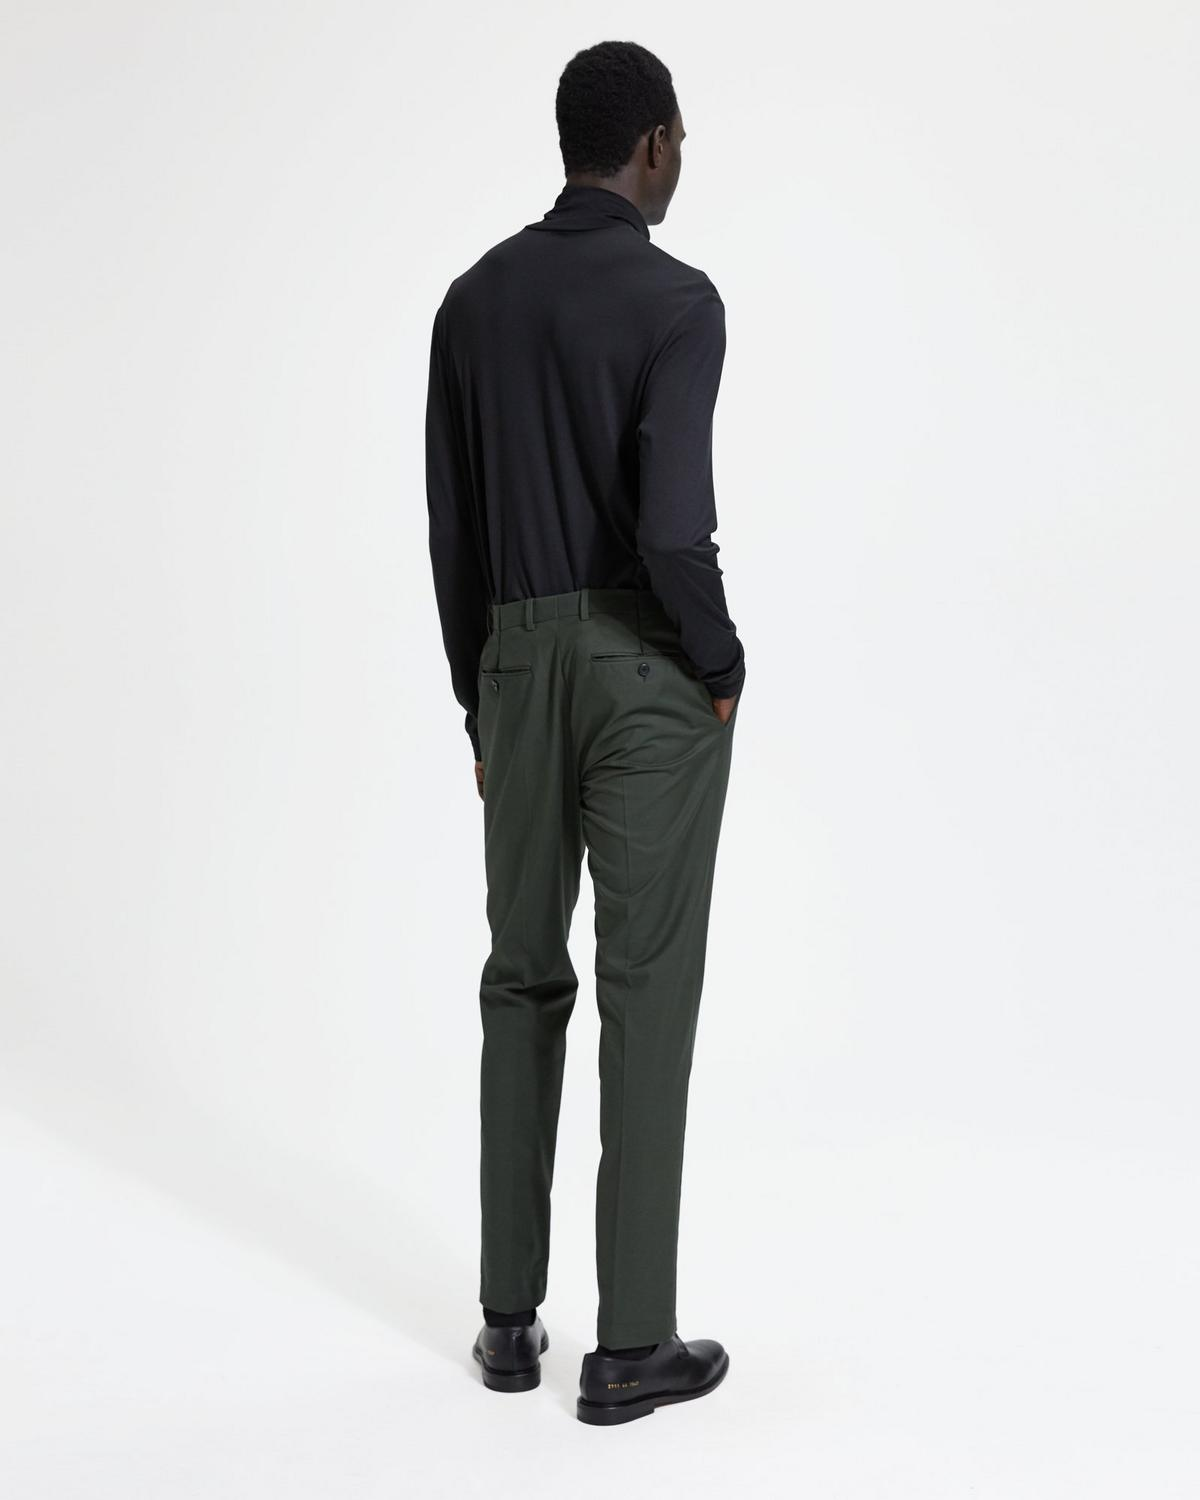 How to wool wear pants casually video